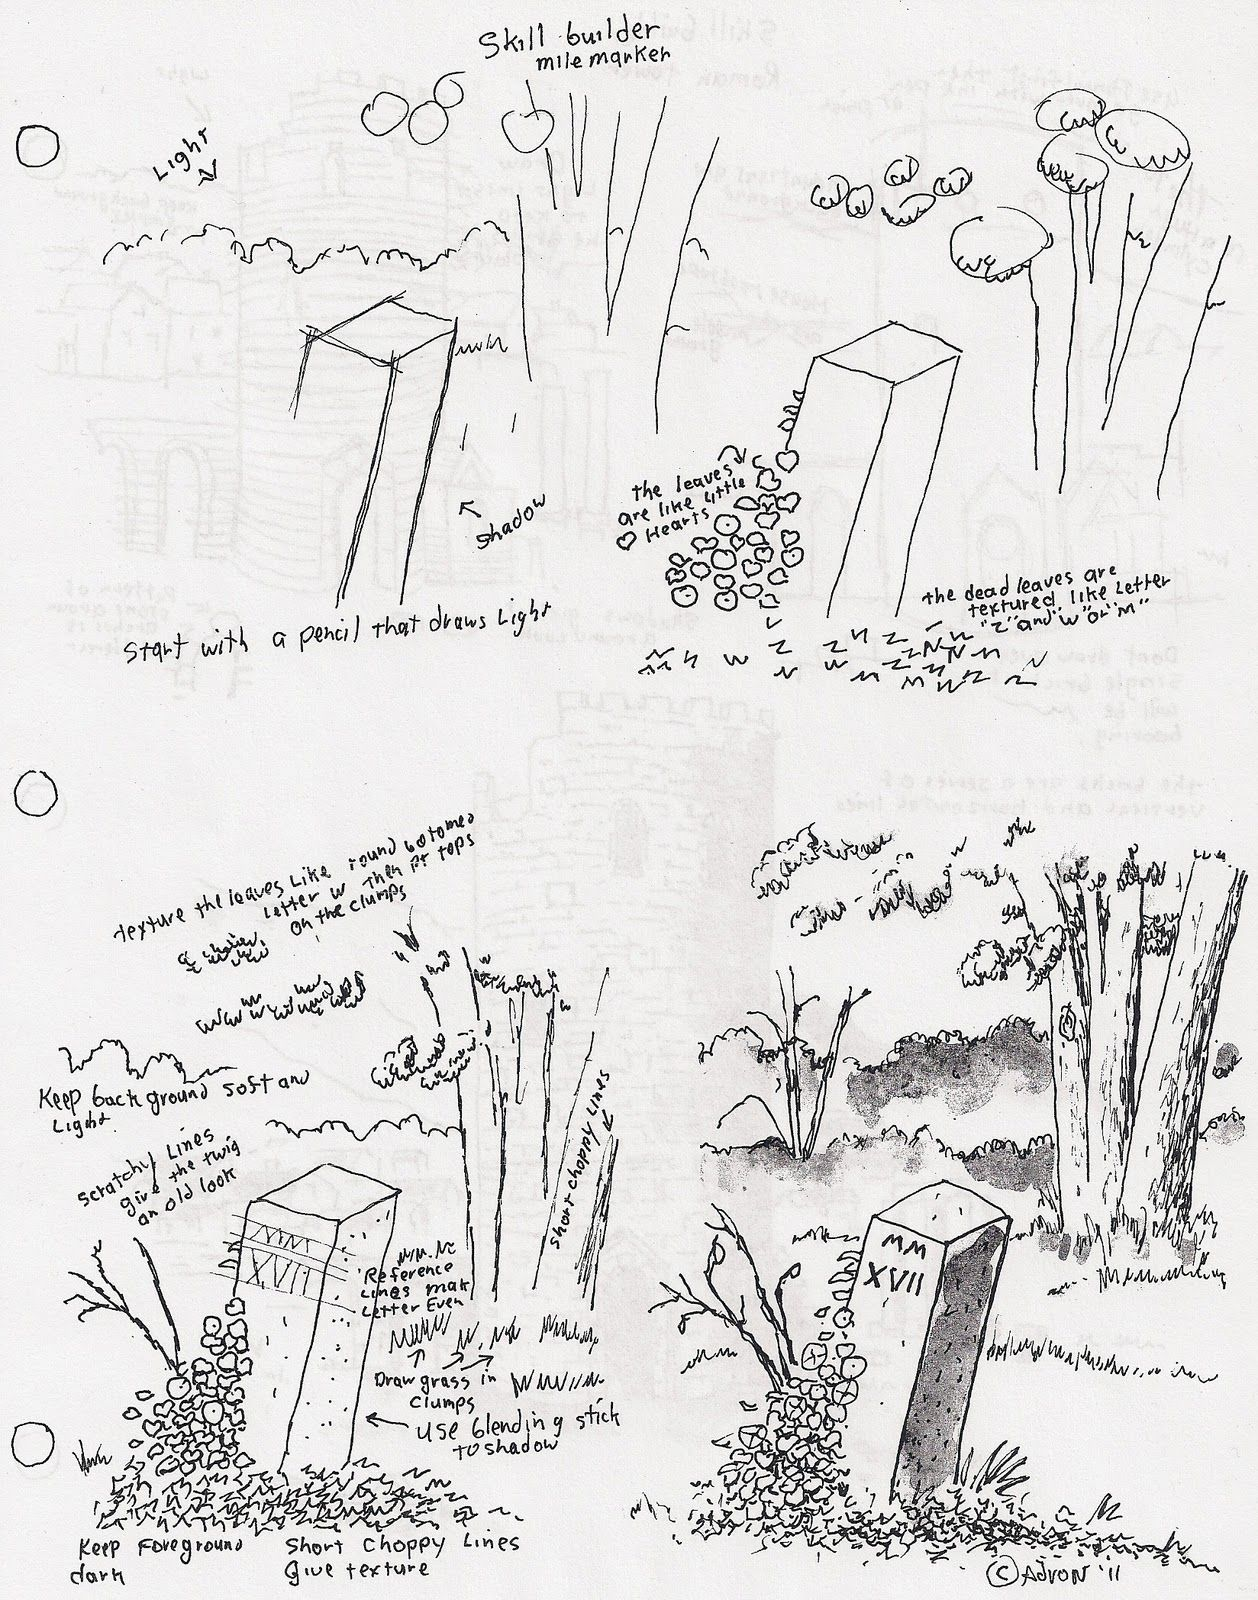 How To Draw A Mile Marker With Ivy Leaves